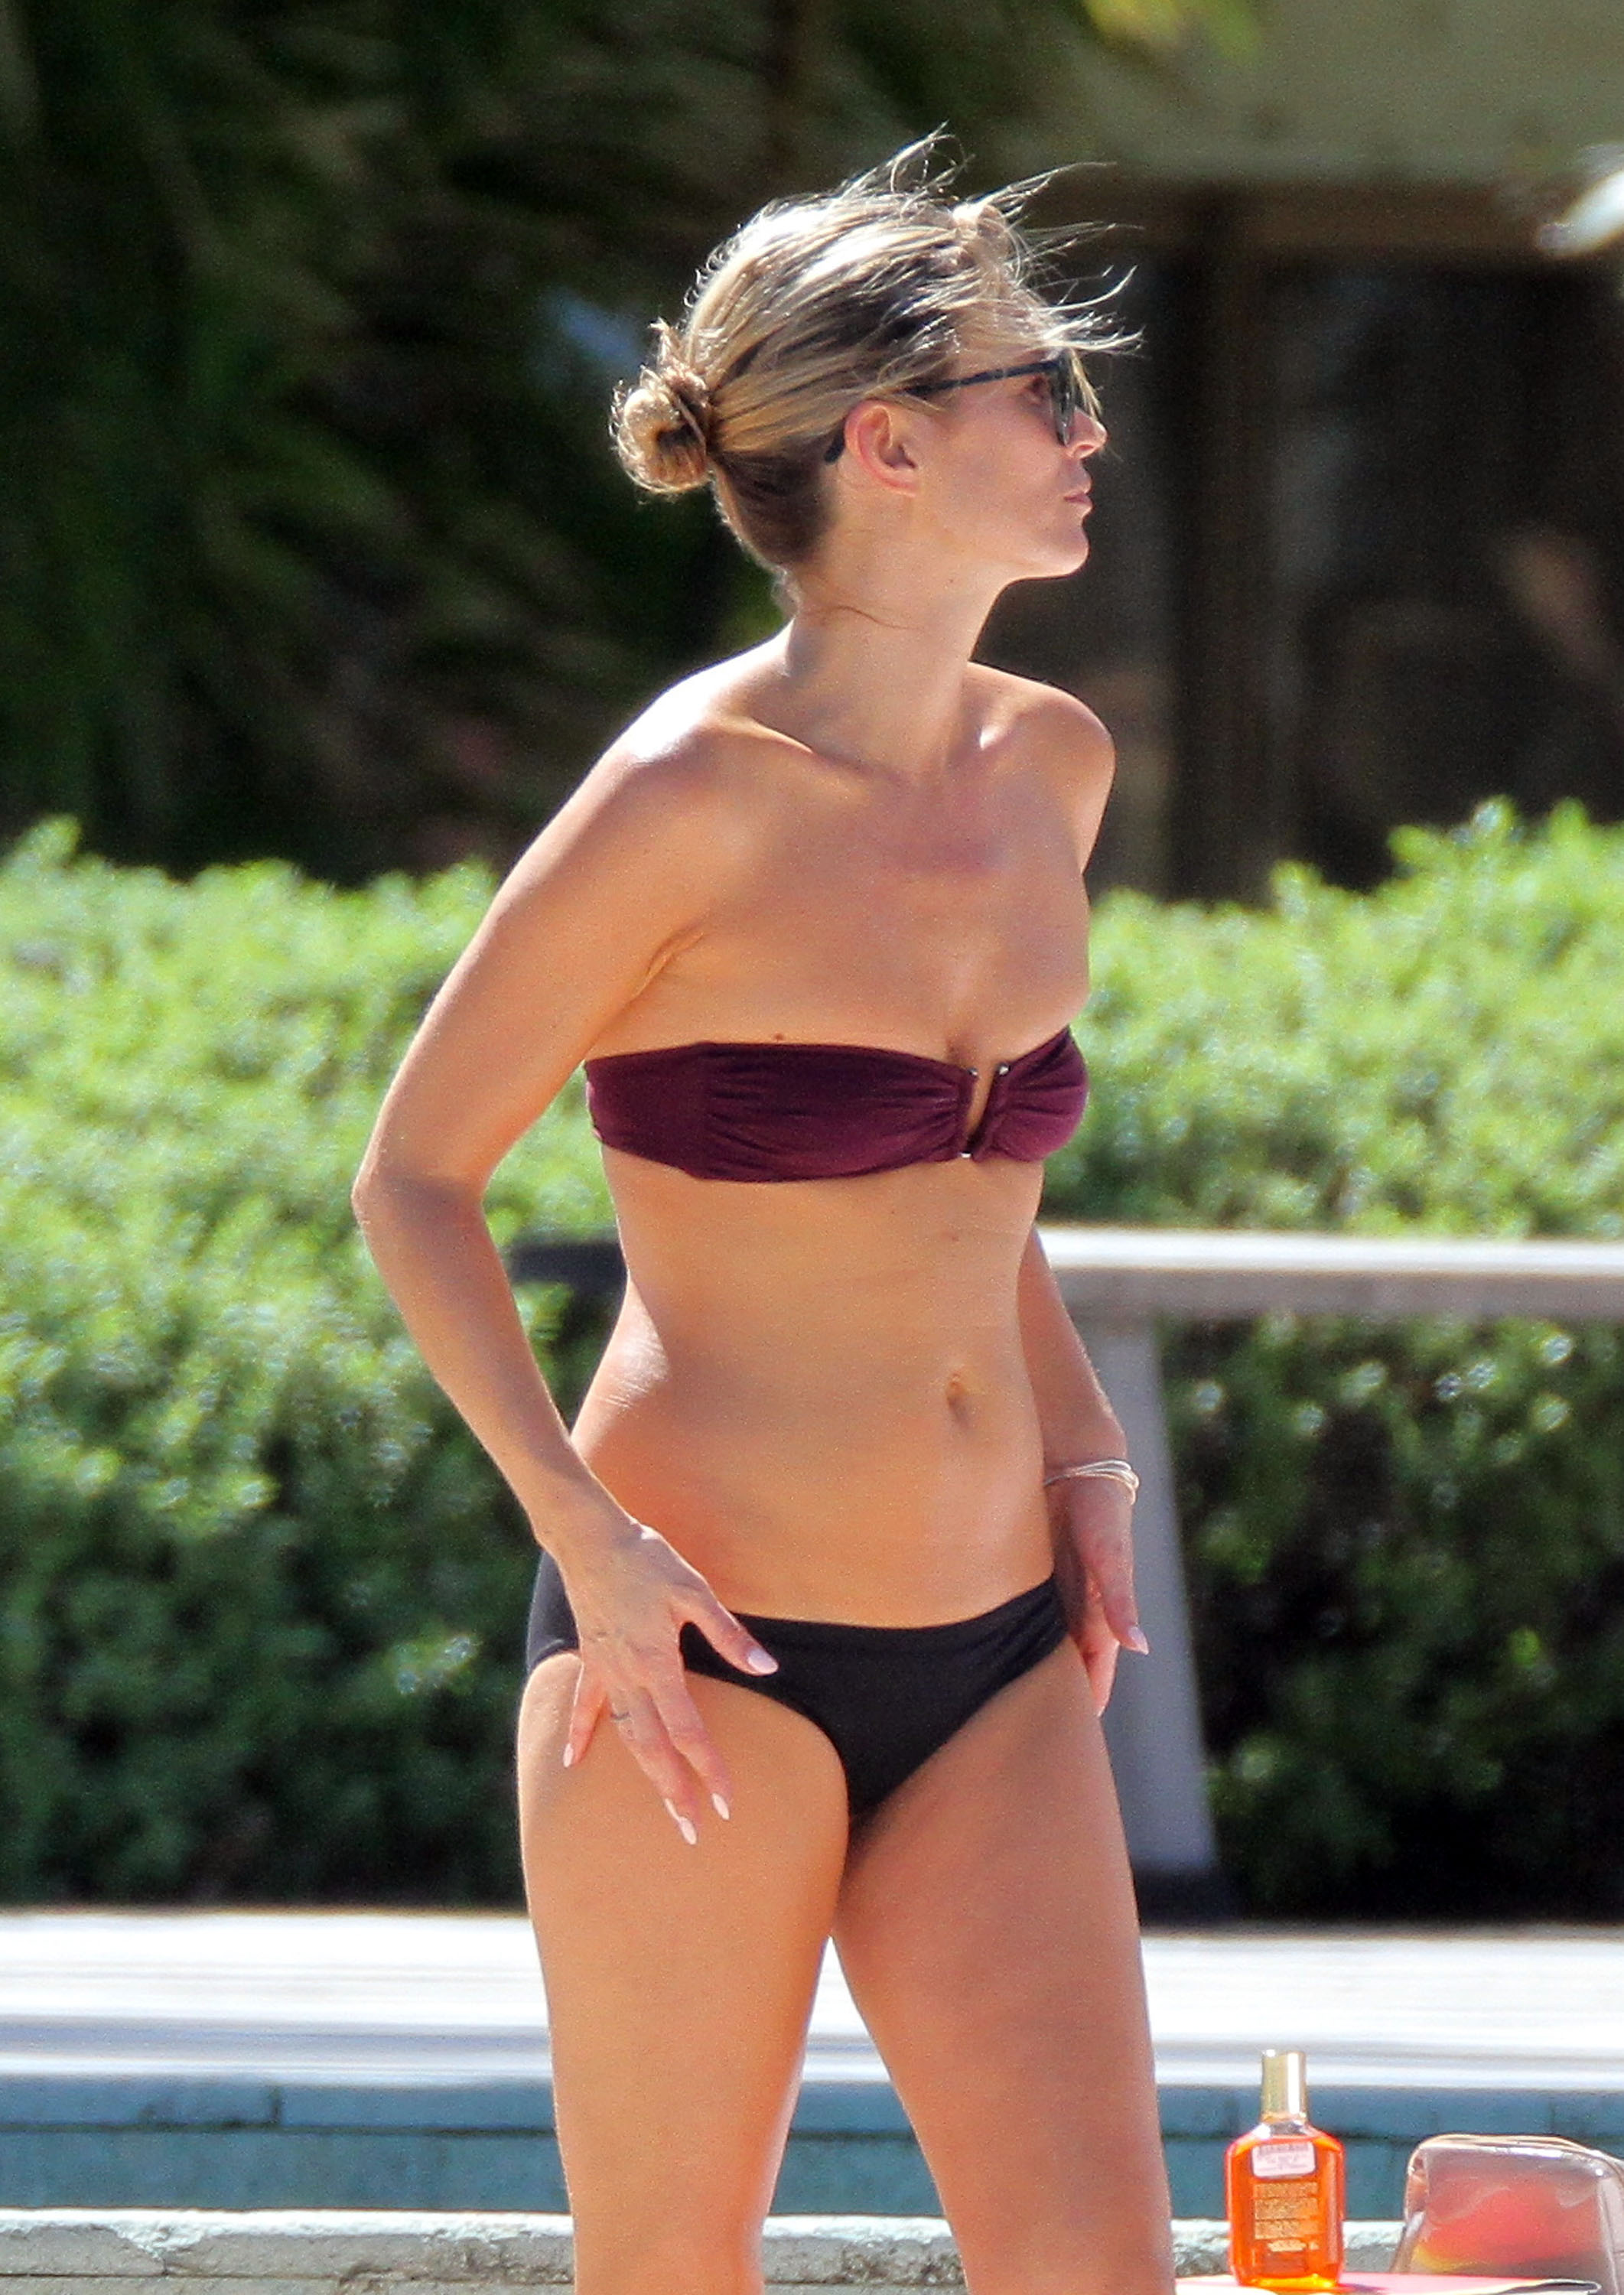 Kate Moss worked on her tan.